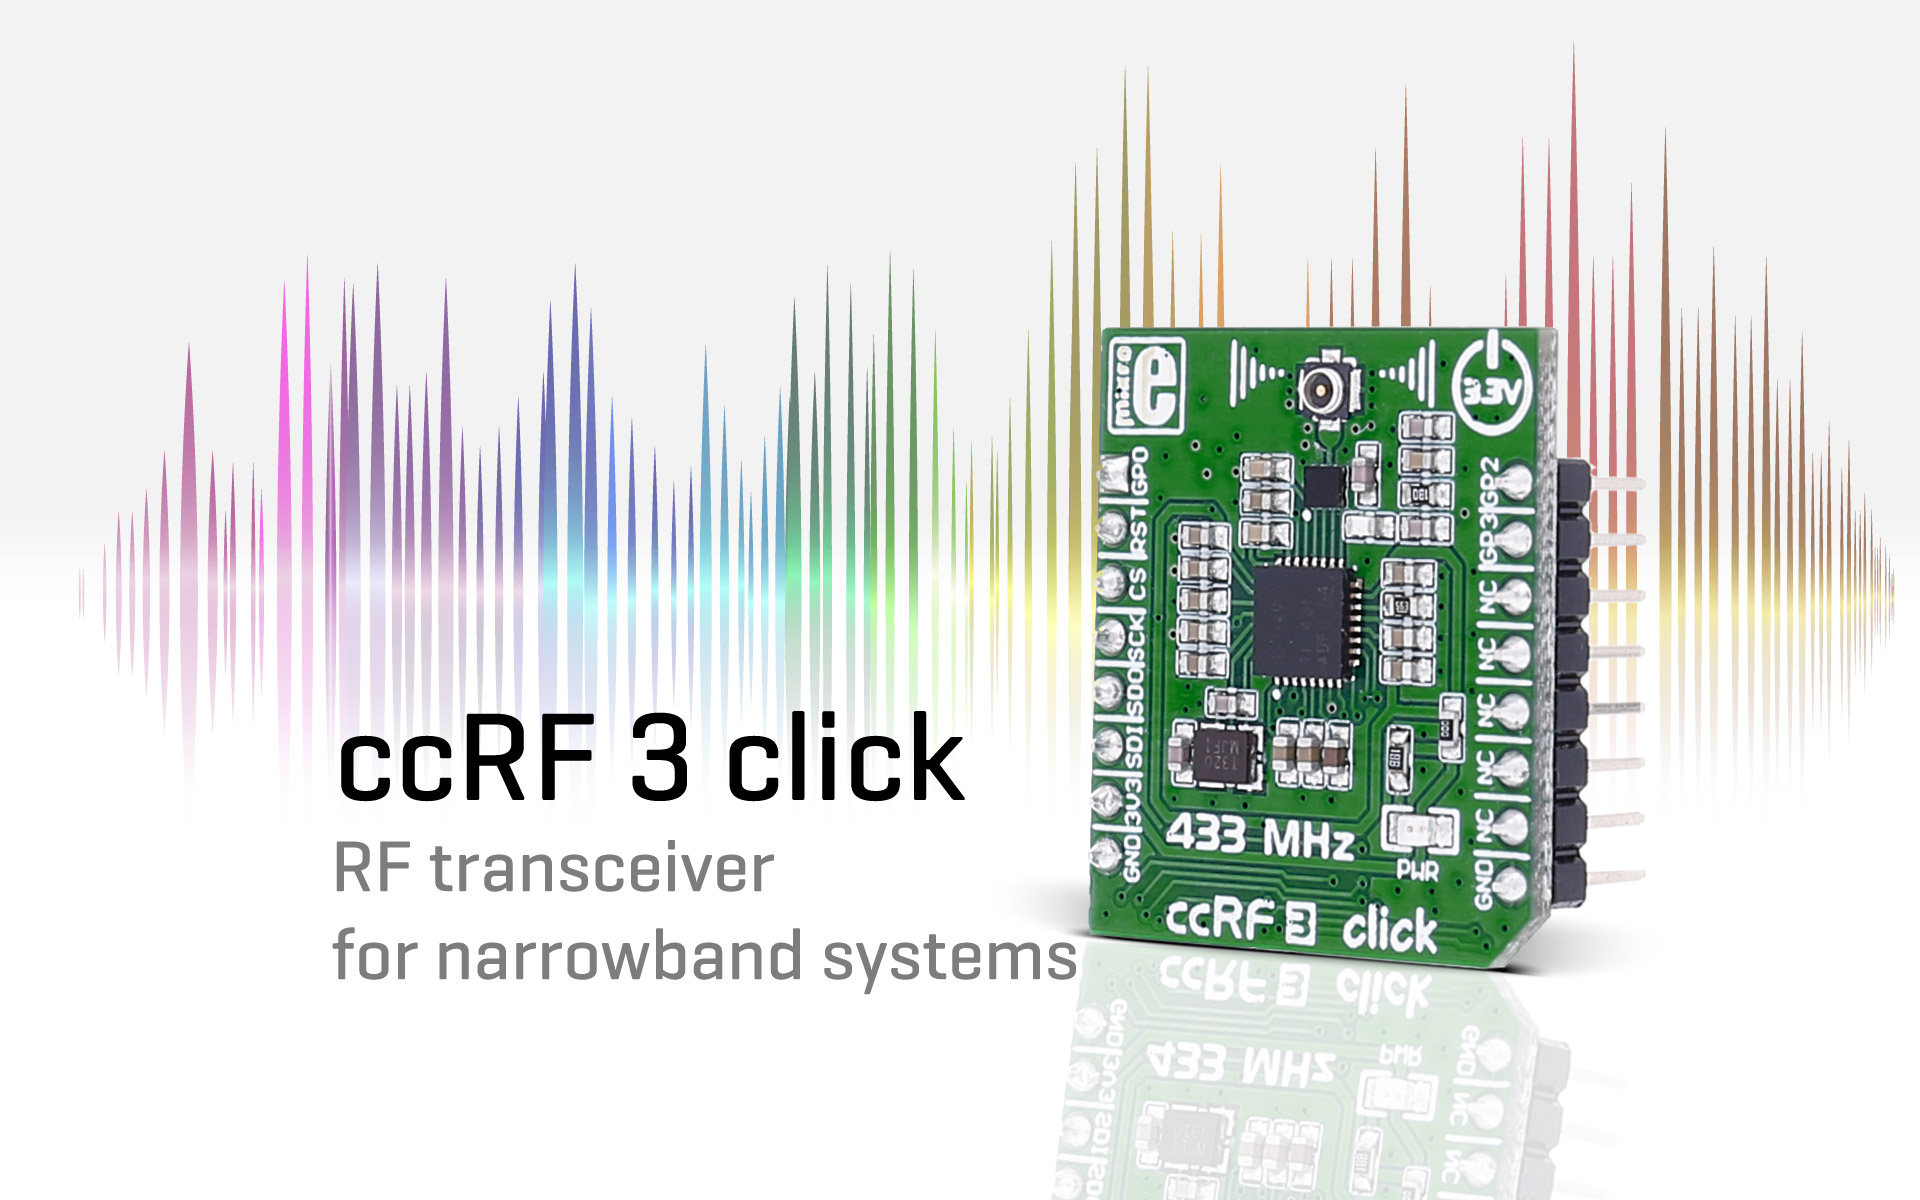 ccRF 3 click — RF transceiver for narrowband systems